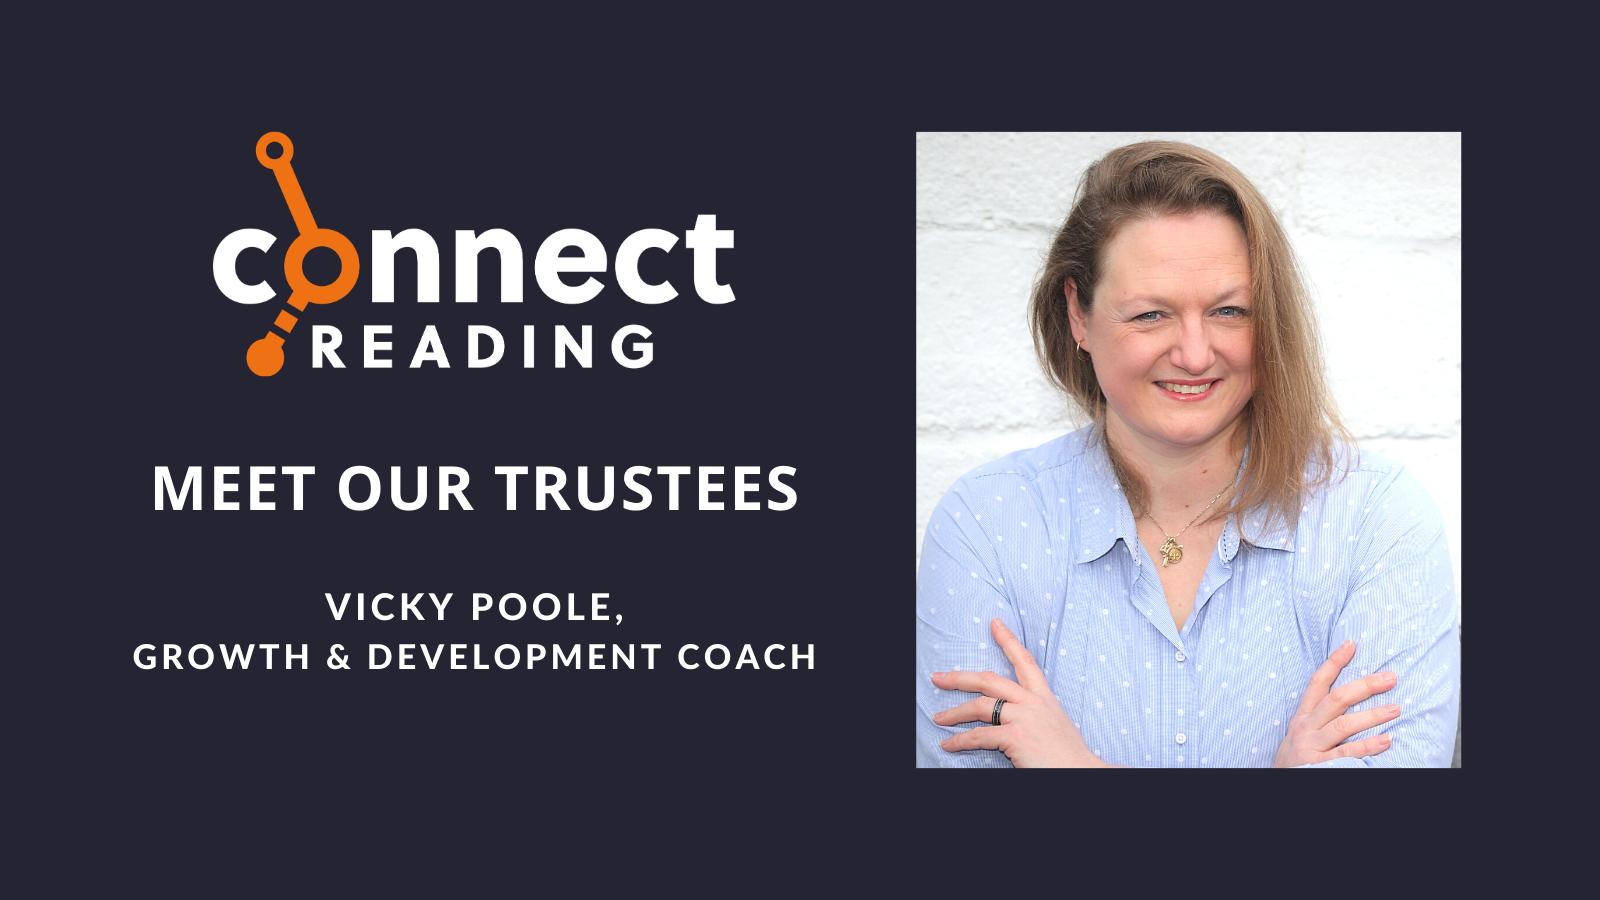 Meet our Trustees: Vicky Poole